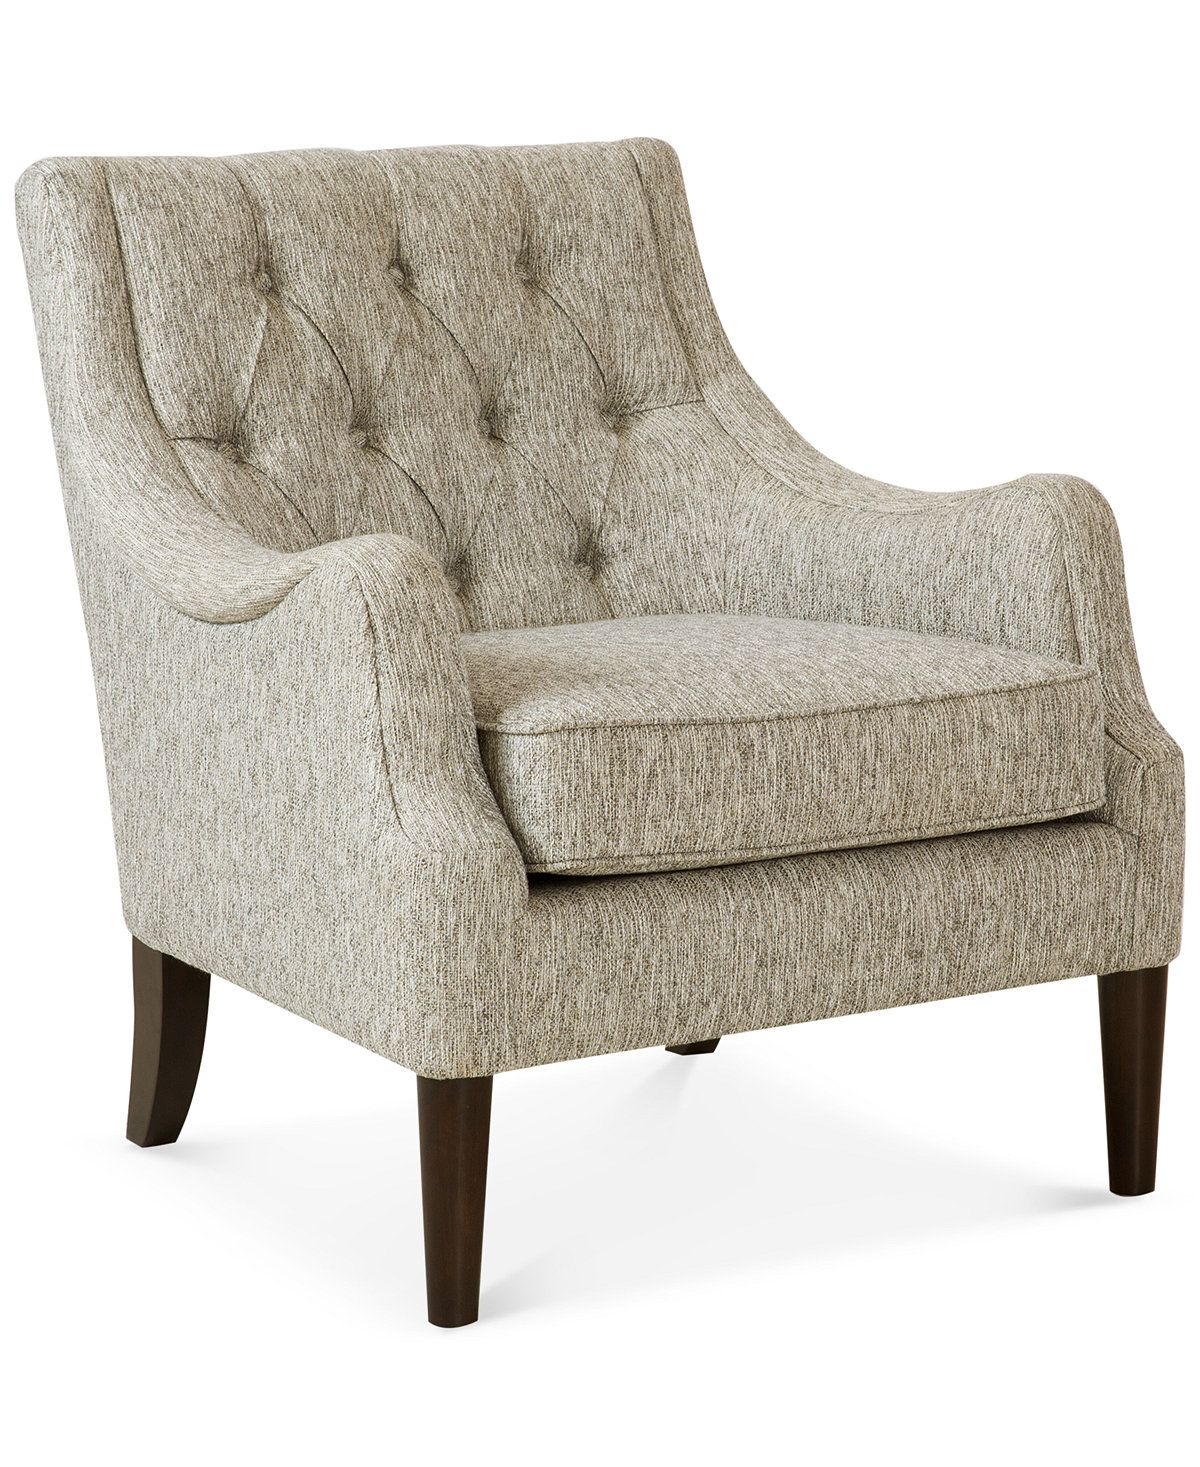 Furniture Glenis Tufted Accent Chair Reviews Chairs Furniture Macy S Tufted Accent Chair Accent Chairs For Living Room White Accent Chair